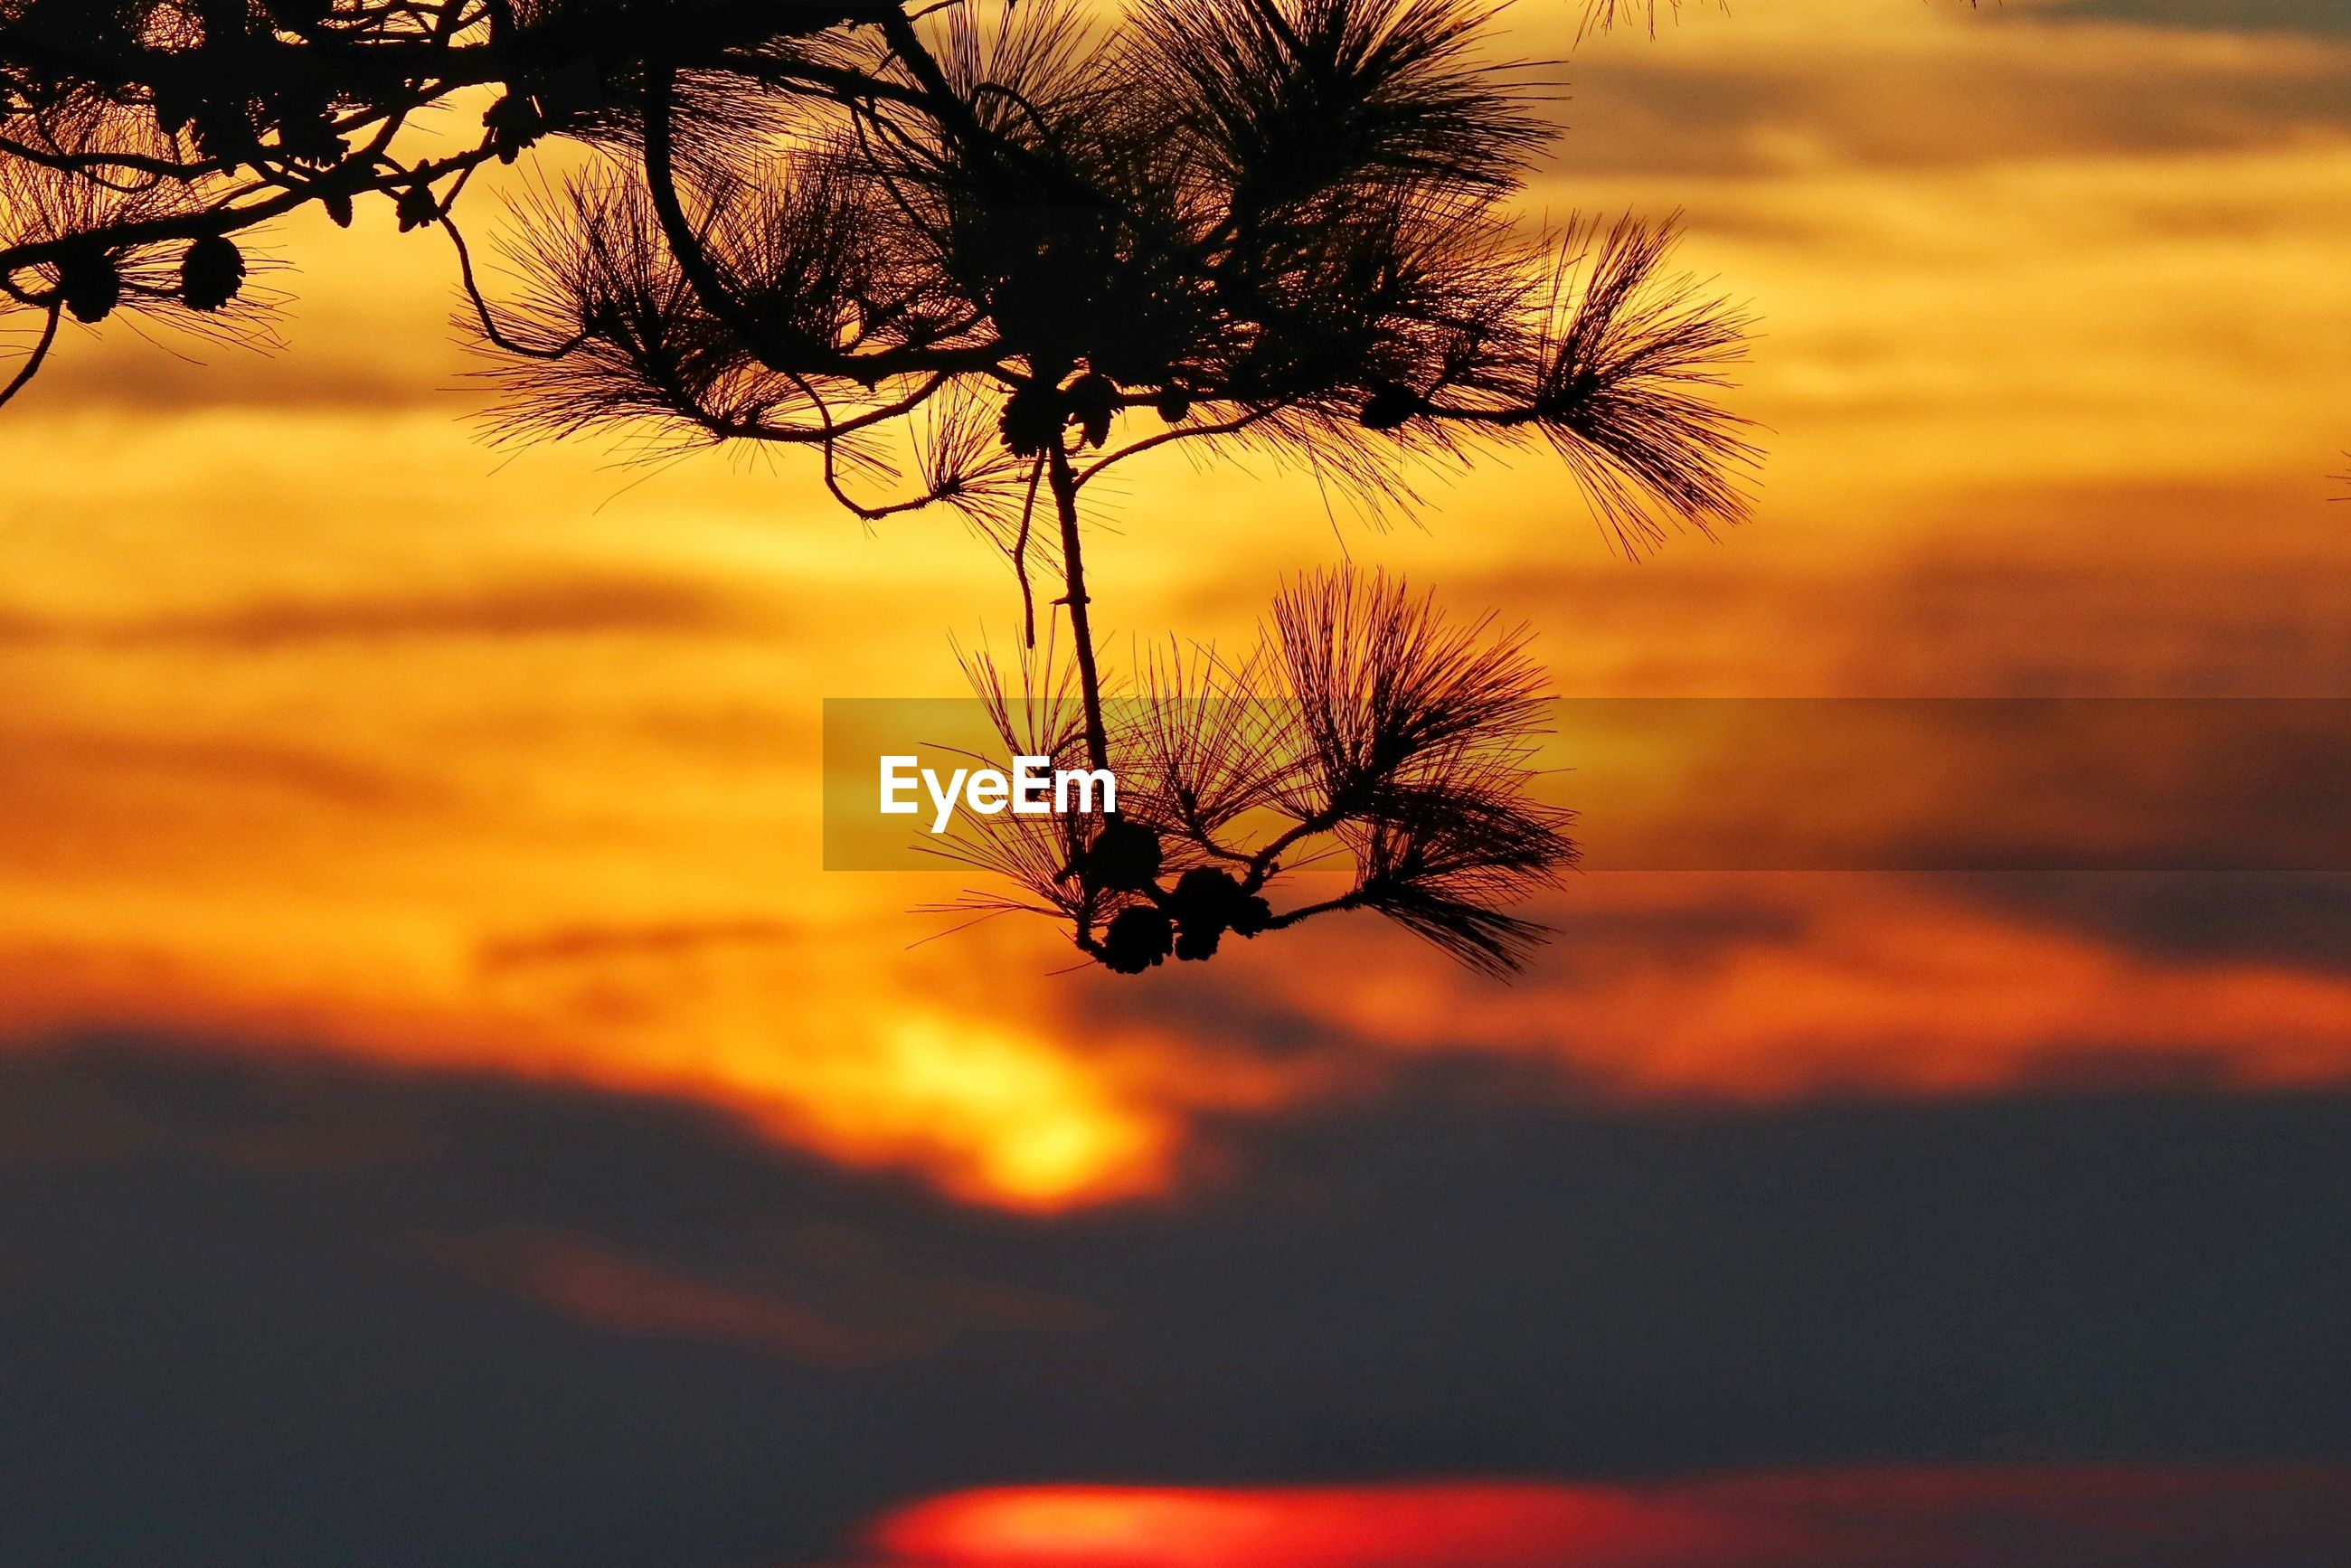 SILHOUETTE PLANT AGAINST ORANGE SKY